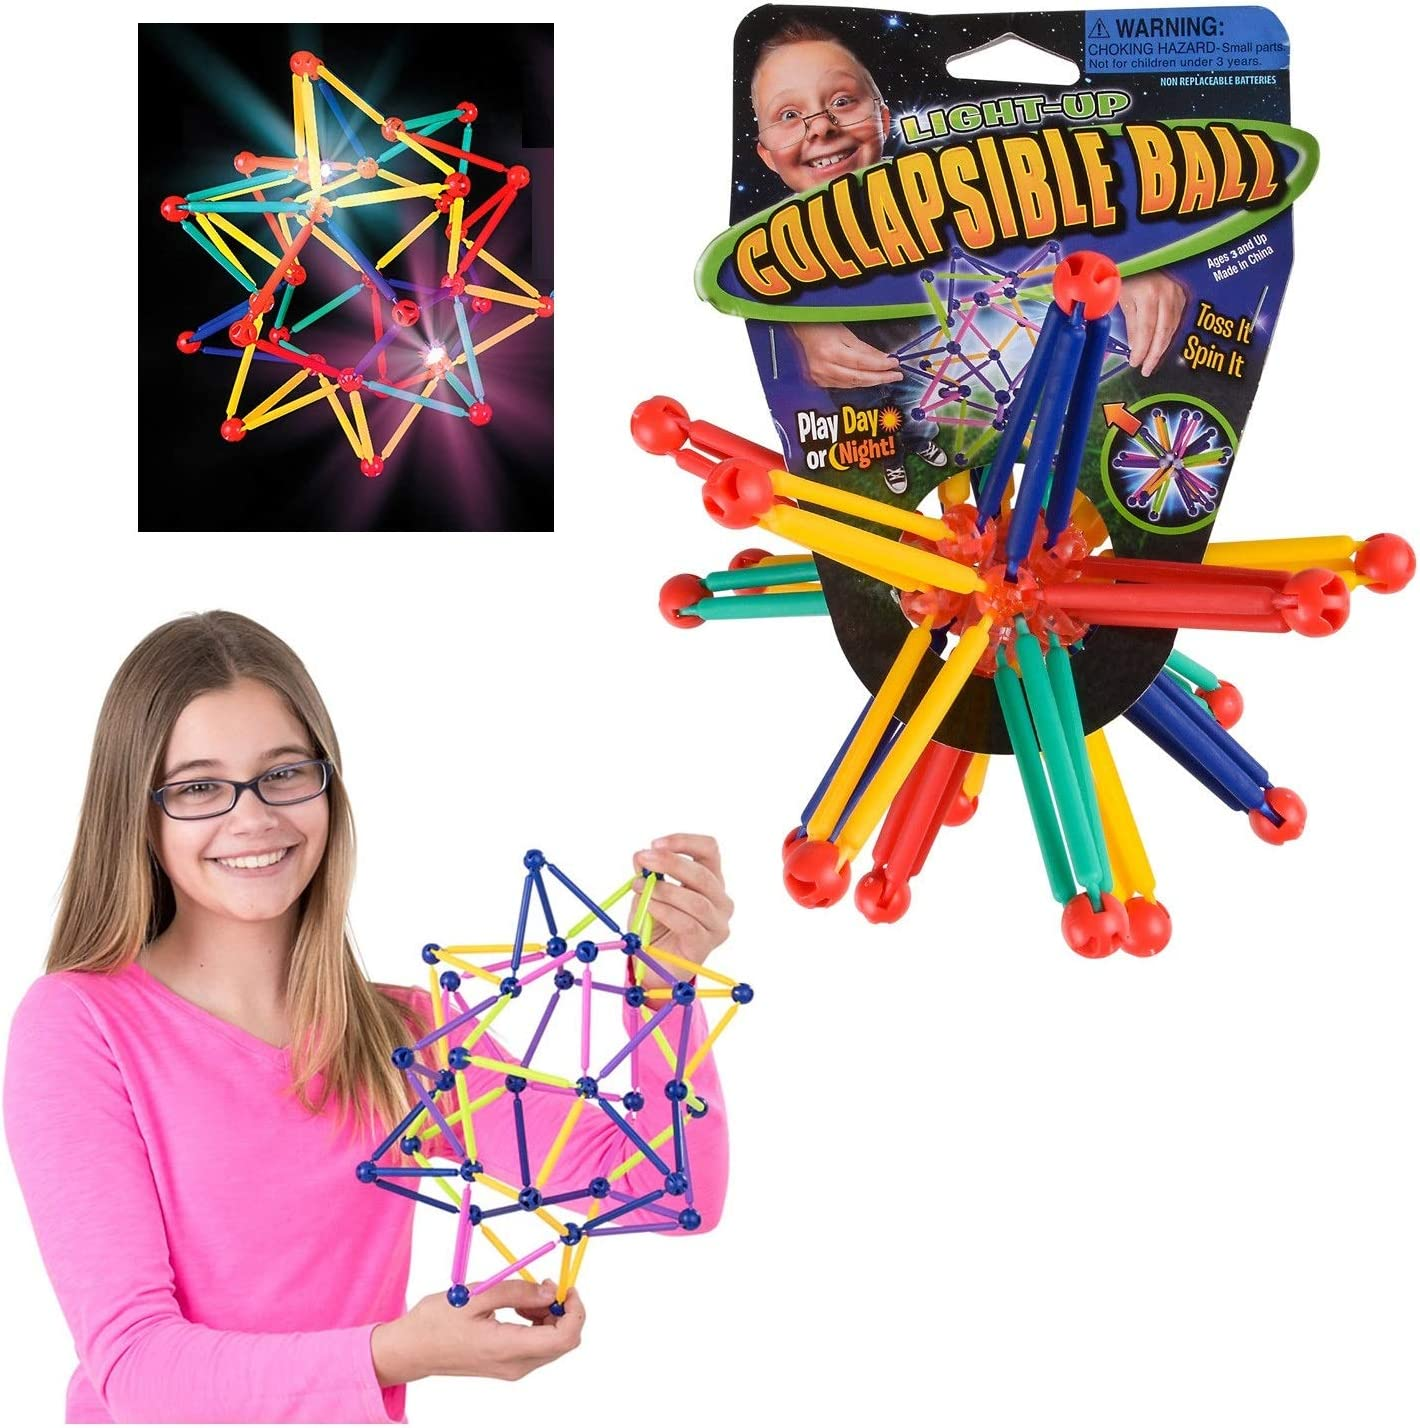 Multicolored Expandable and Contractible Sphere Prizes 12 Light-Up Collapsible Ball Gifts and Supplies Party Favors Expandable Fun for Everyone Great for Sensory and Tactile Stimulation Come in Assorted Colors.